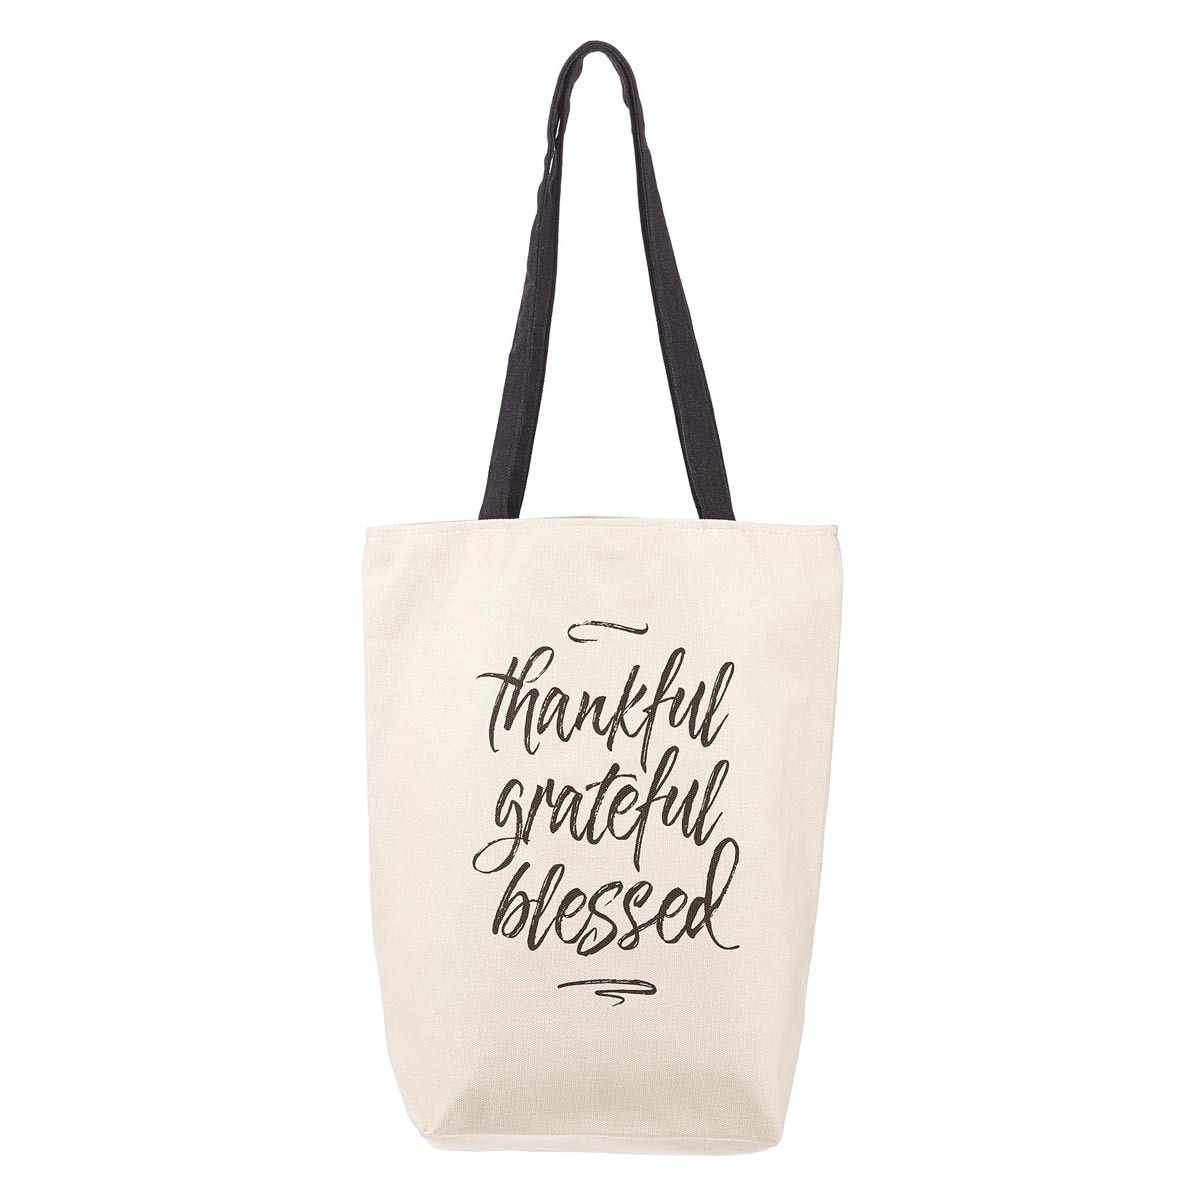 Start Each Day With a Grateful Heart Inspirational Tote Bag